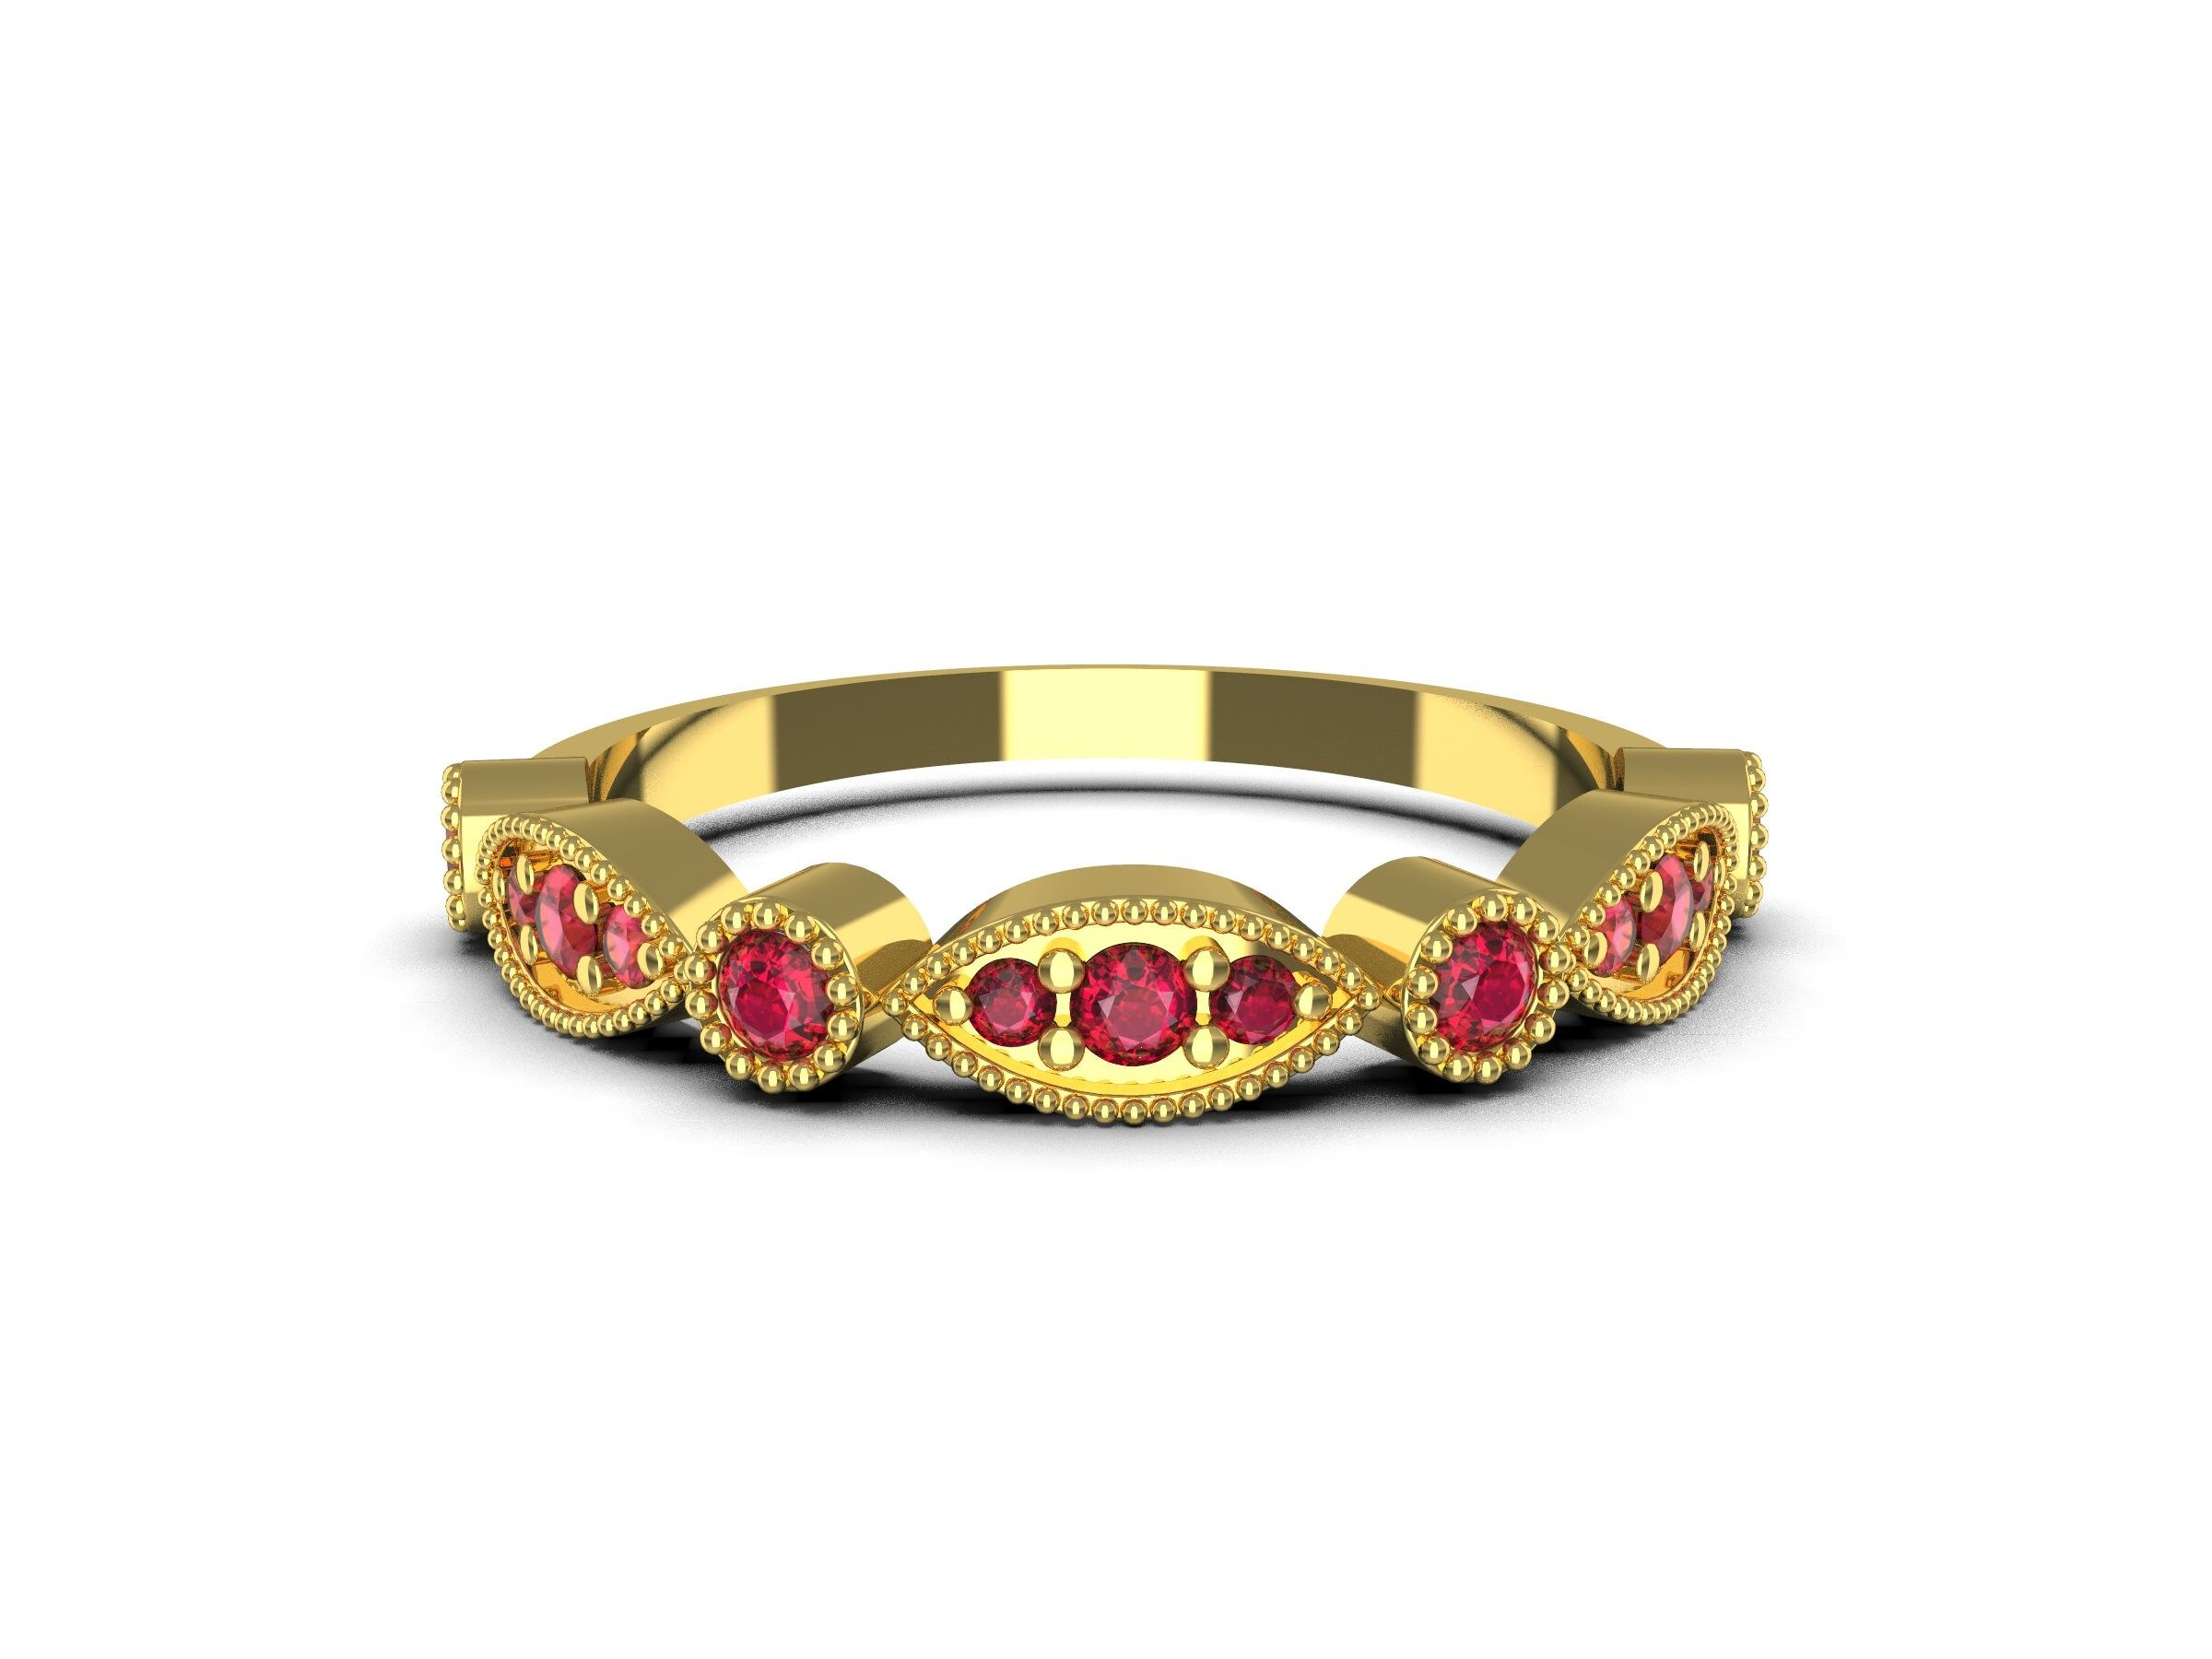 Vintage Wedding Band / 14k Solid Gold Art Deco Ruby Wedding Ring / Marquise Matching Band / Anniversary Ring / Stackable Diamond Ring/ surprised your love with this beautifull ruby ring ... ------------------------------------------------------------------------------------------- item description - stone - natural ruby shape - round colour - red clarity - transparent size - 1.80 mm and 1.30 mm sizes weight - 0.28 ctw total pieces - 13 treatment - no any treatment ( certificate included with ite